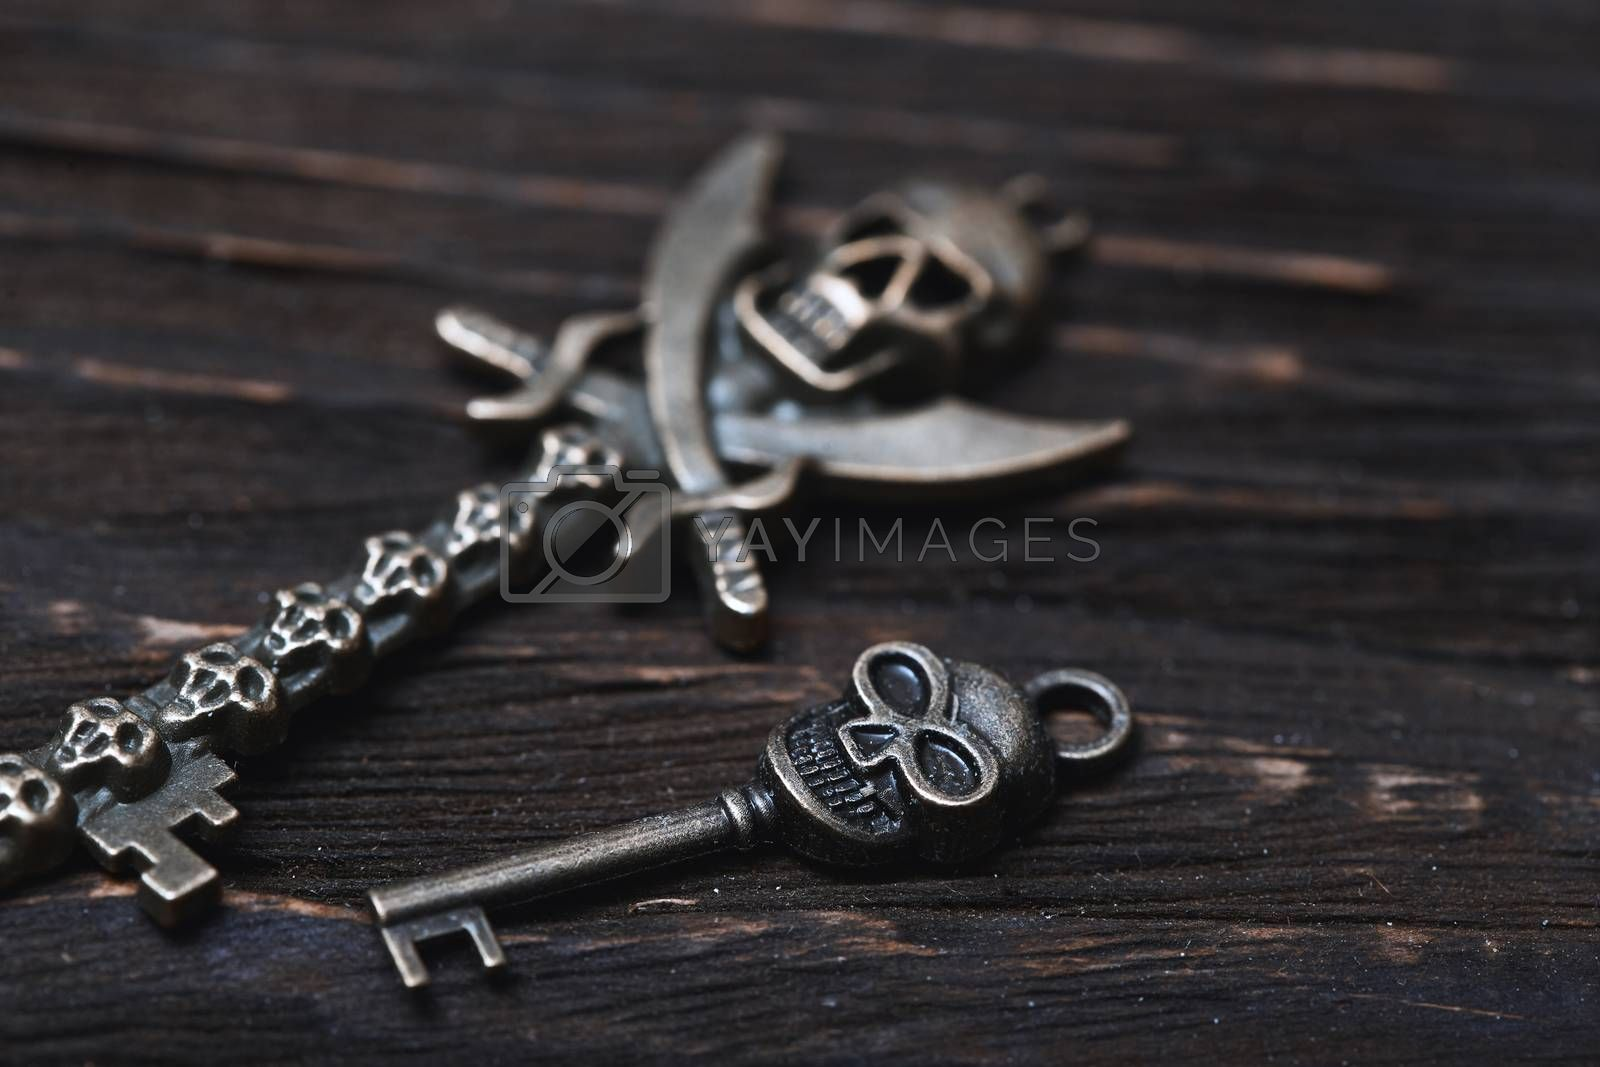 Vintage skull skeleton keys on a wooden table by Novic